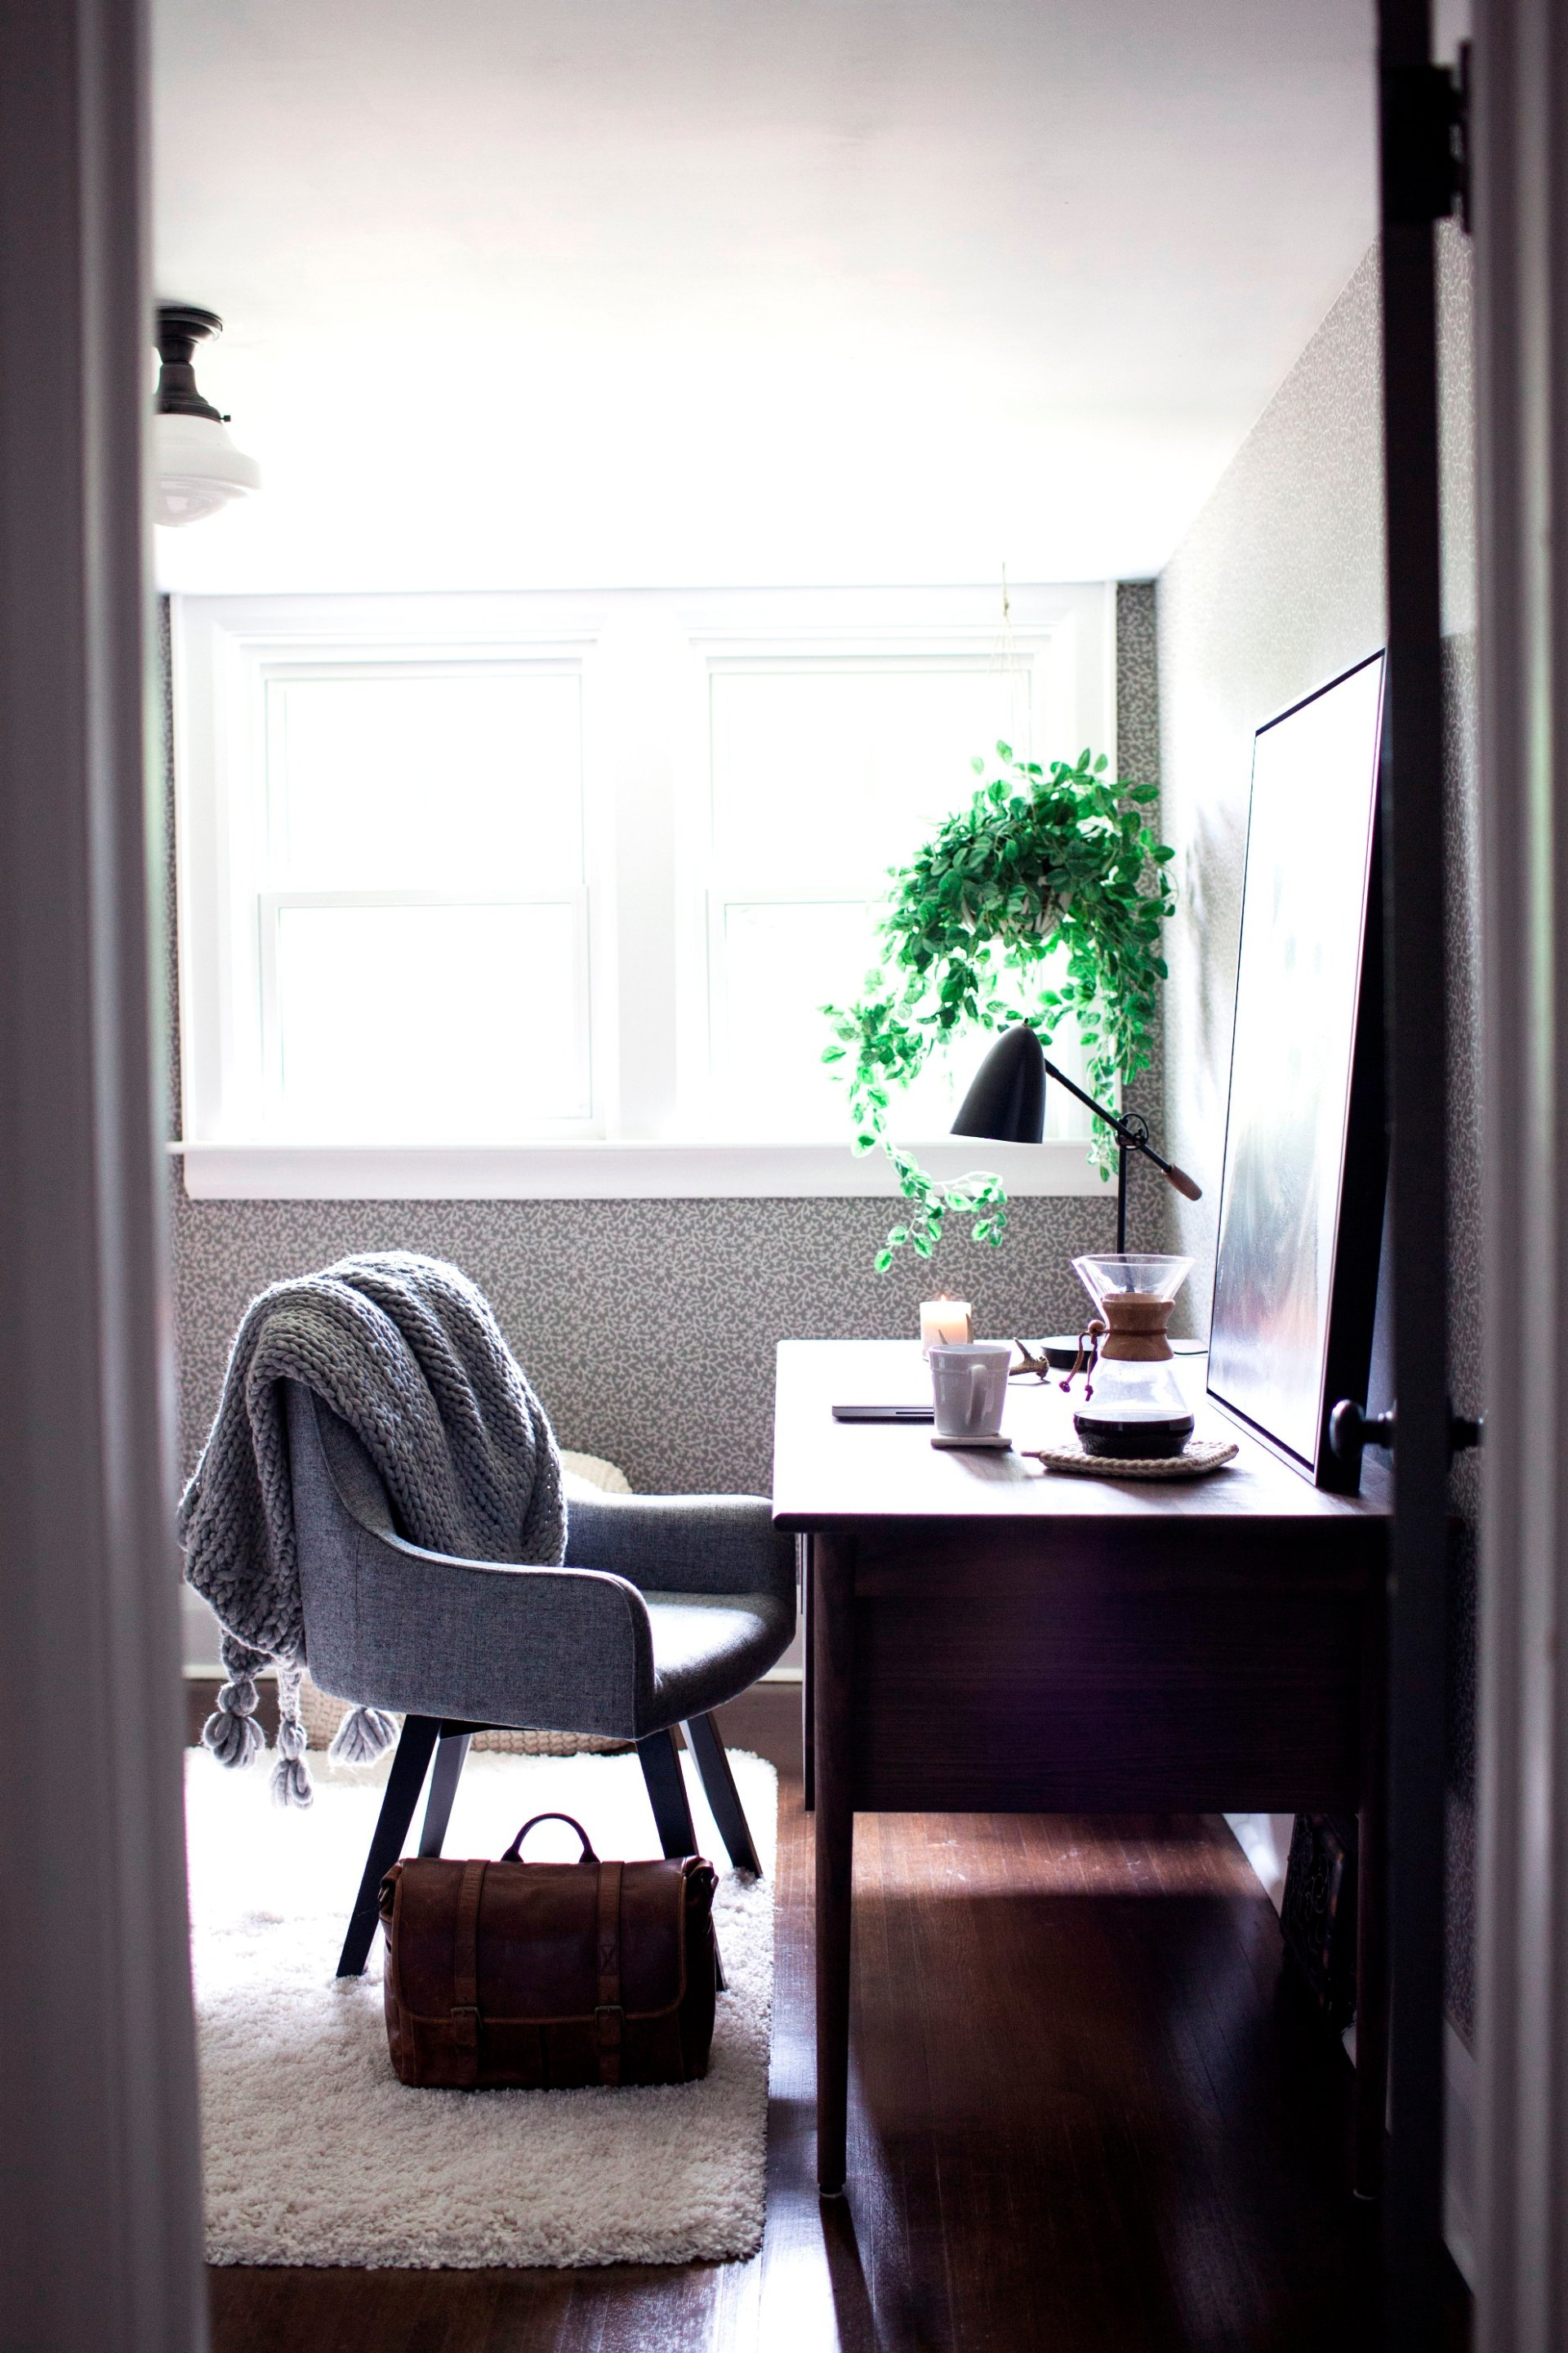 Hygge Ideas for the Home Office | Crate and Barrel Blog